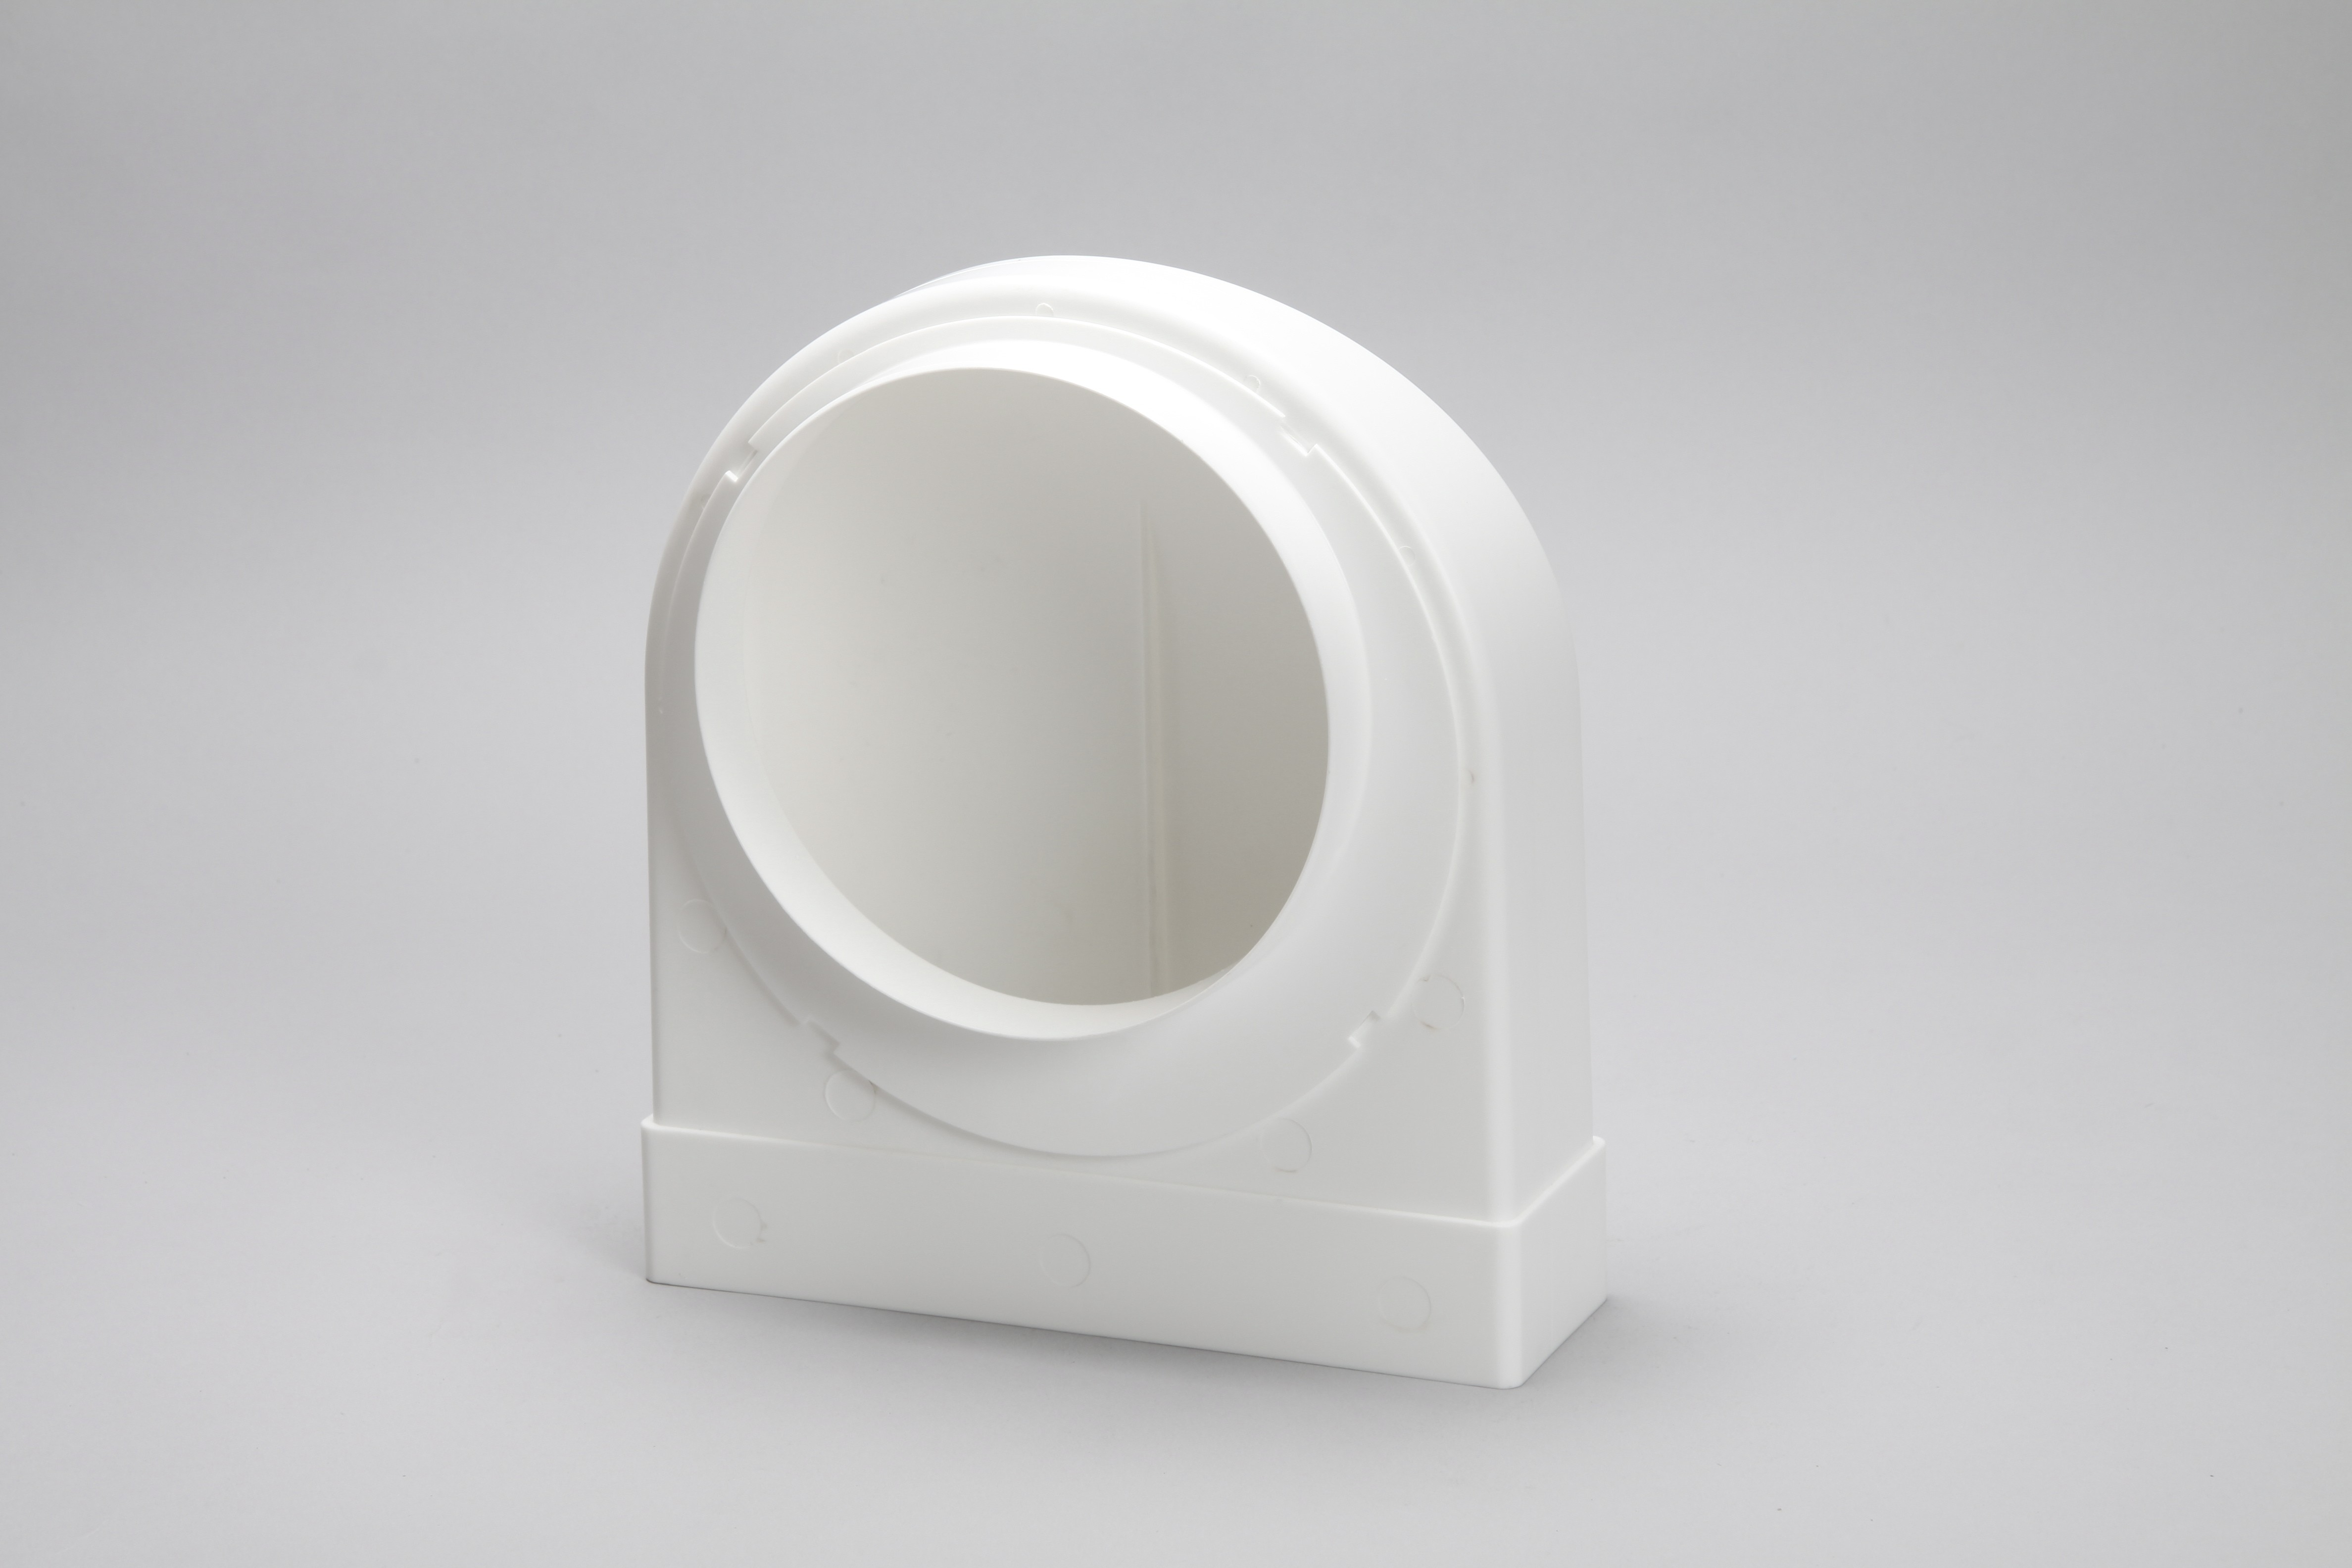 150mm round to rectangular 204mm x 60mm 90 degree bend